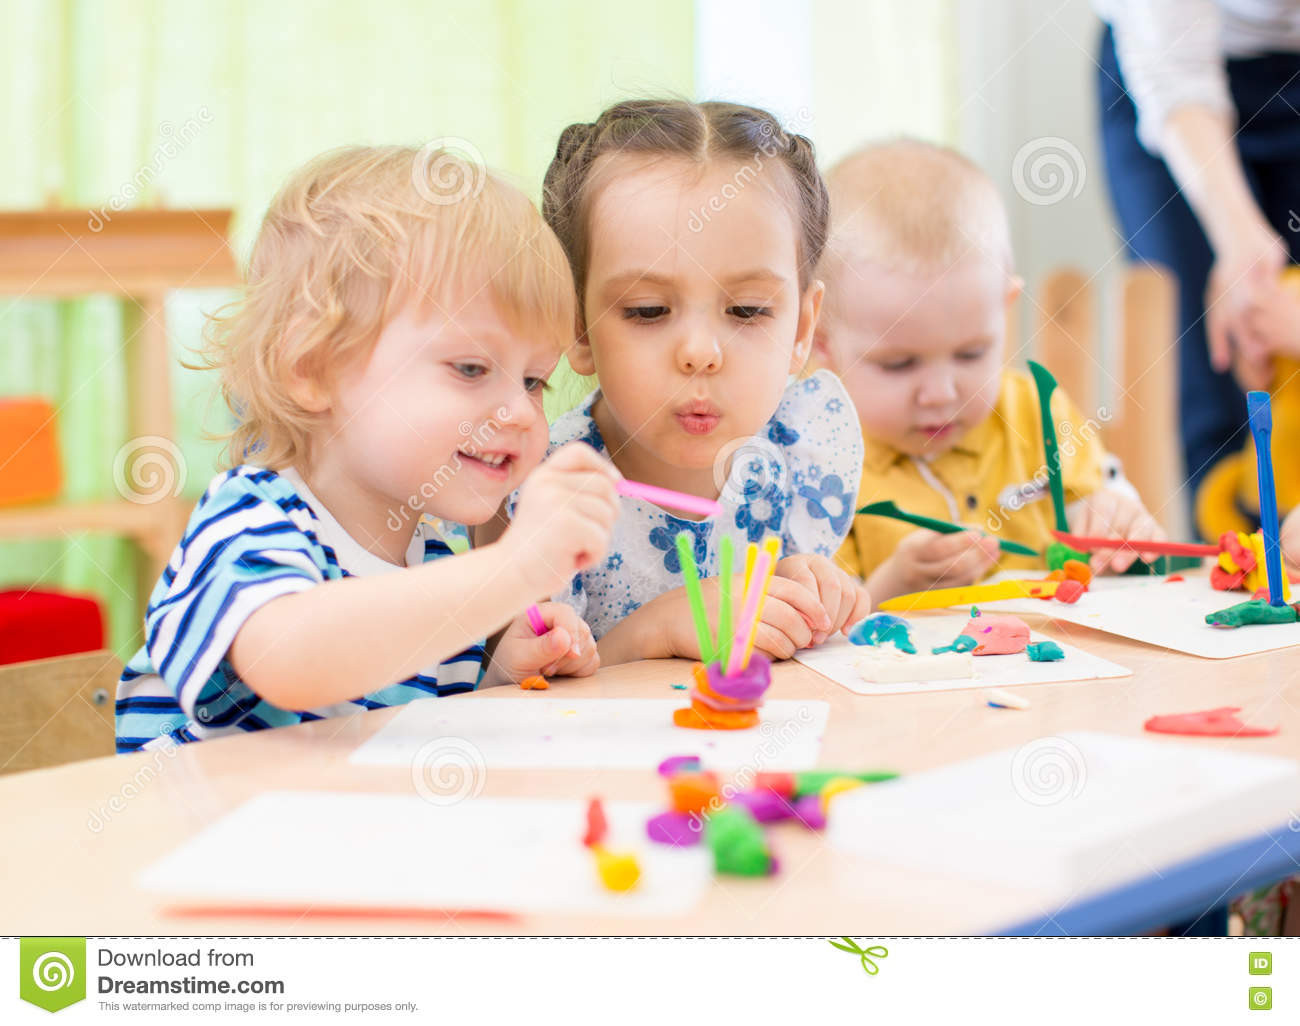 Best ideas about Kids Doing Crafts . Save or Pin Happy Kids Doing Arts And Crafts In Day Care Centre Stock Now.